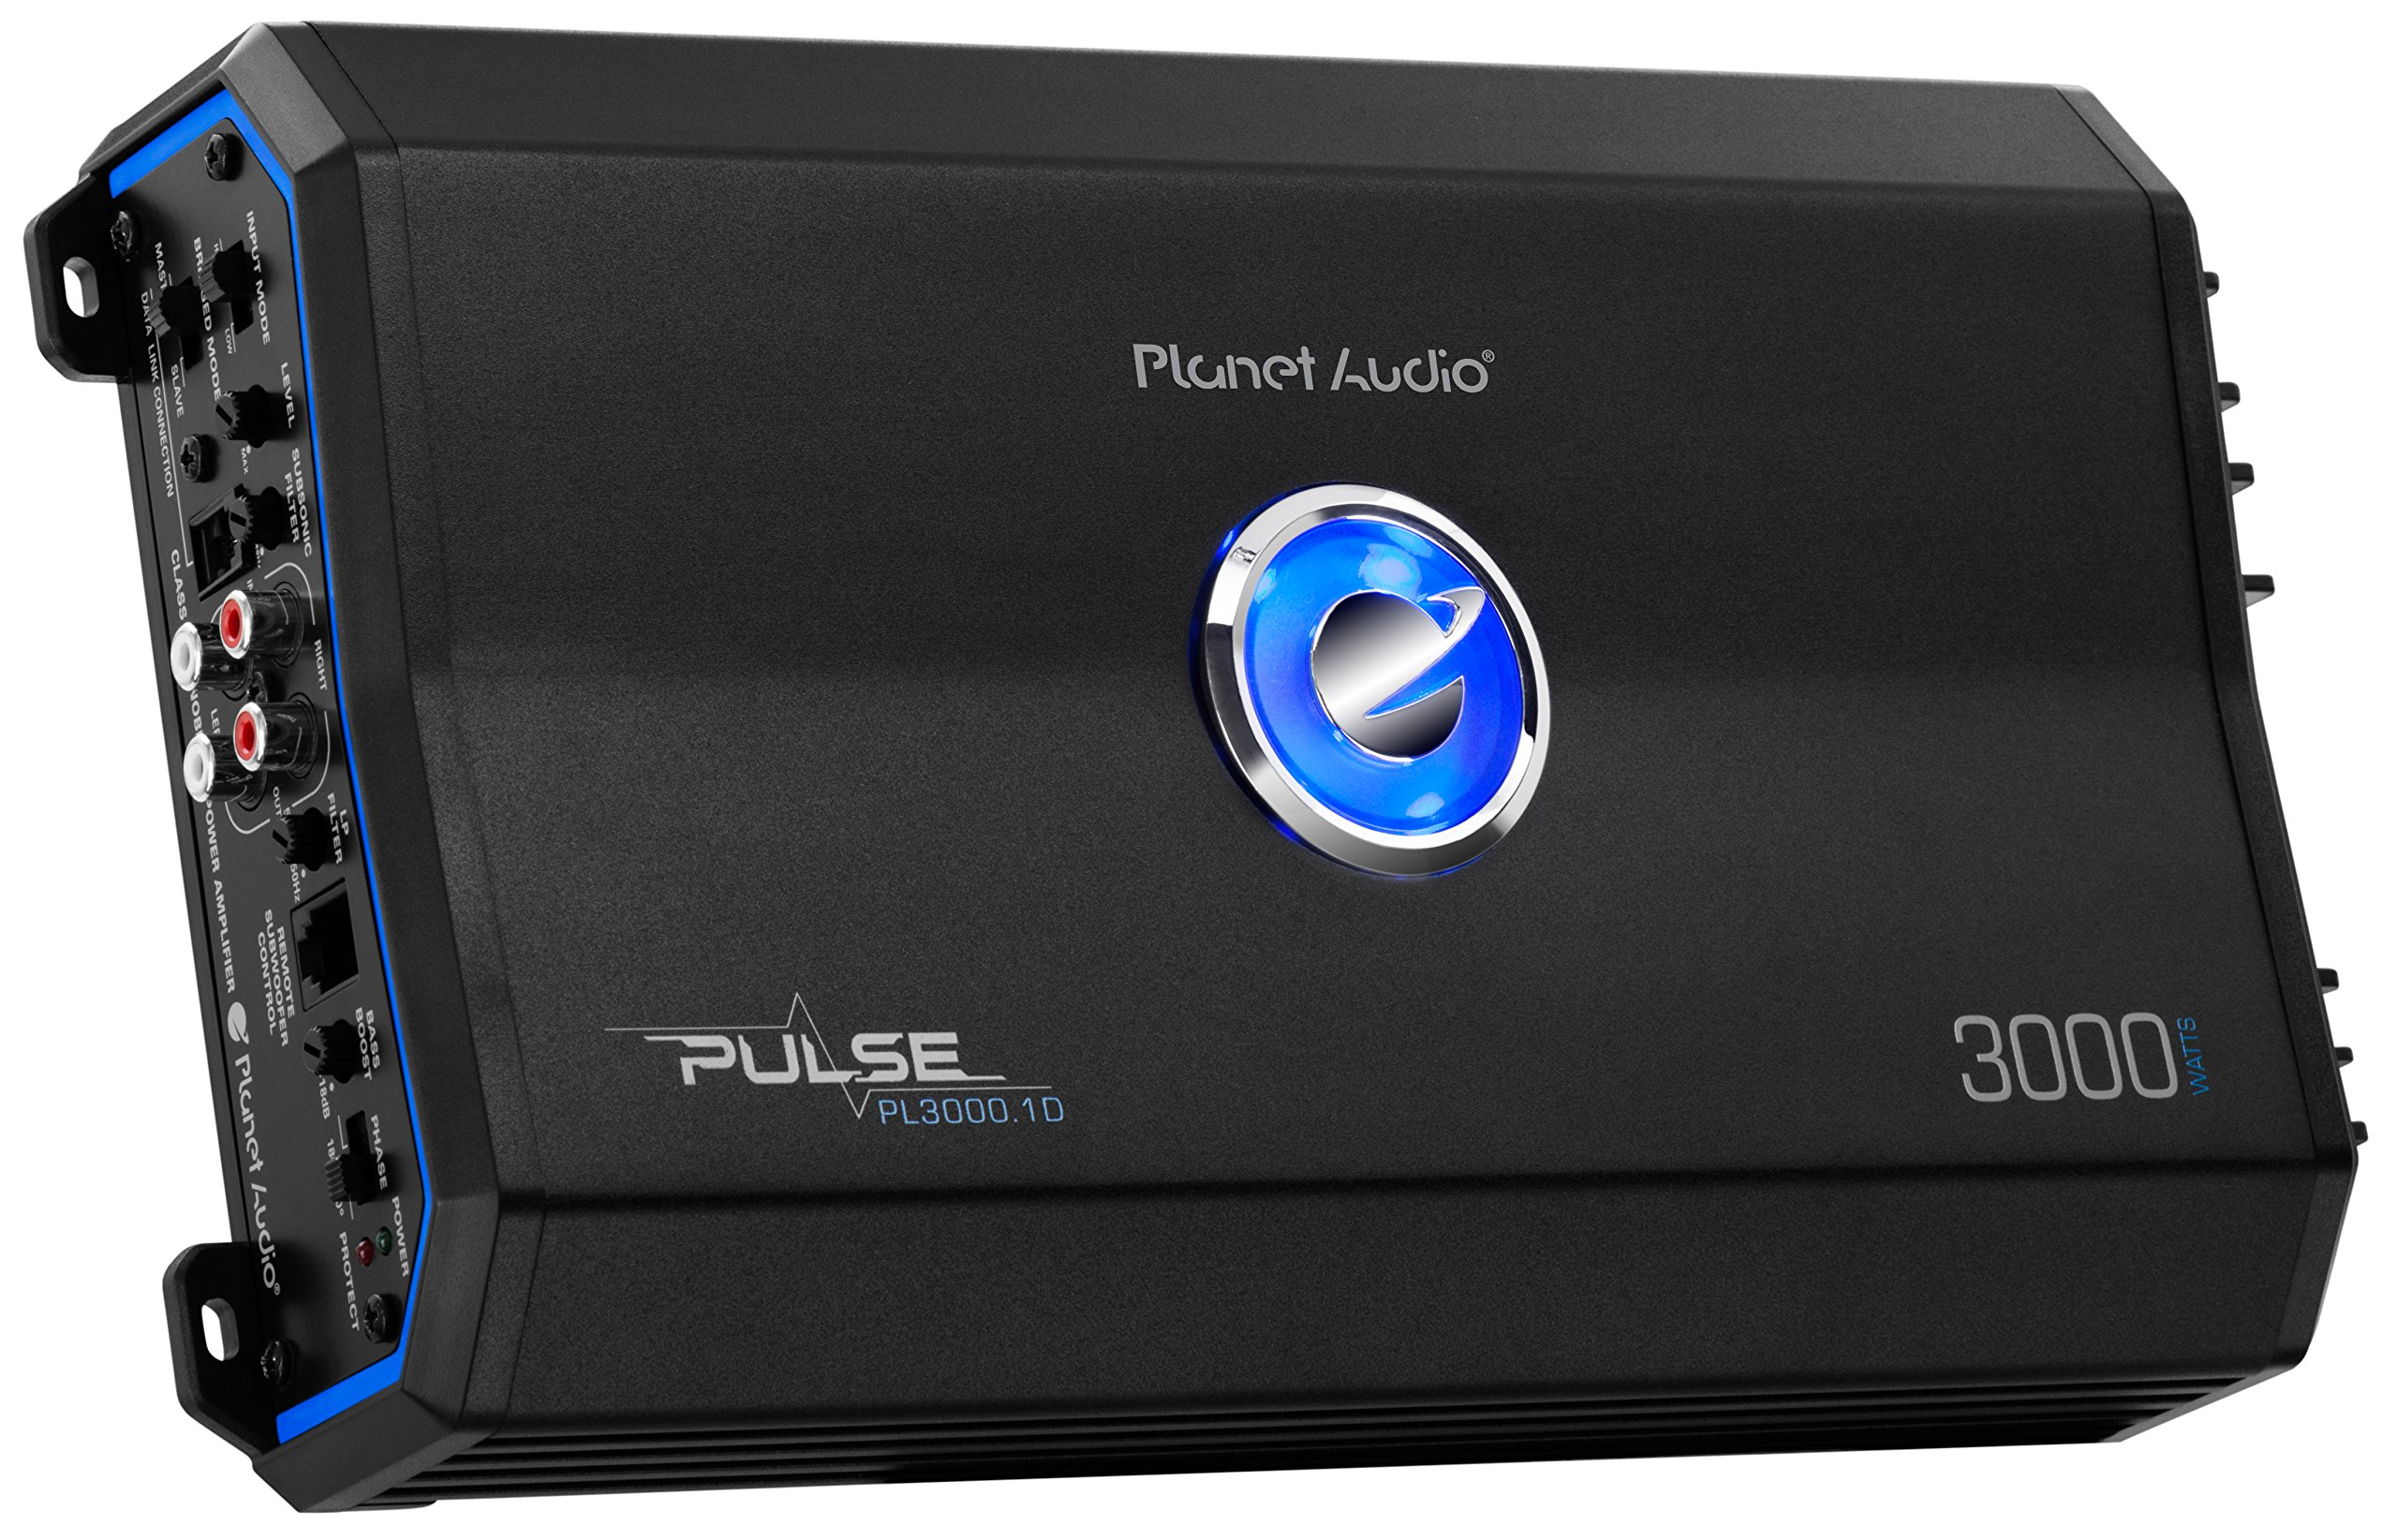 Planet Audio PL3000.1D Pulse 3000 Watt, 1 Ohm Stable Class D Monoblock Car Amplifier with Remote Subwoofer Control